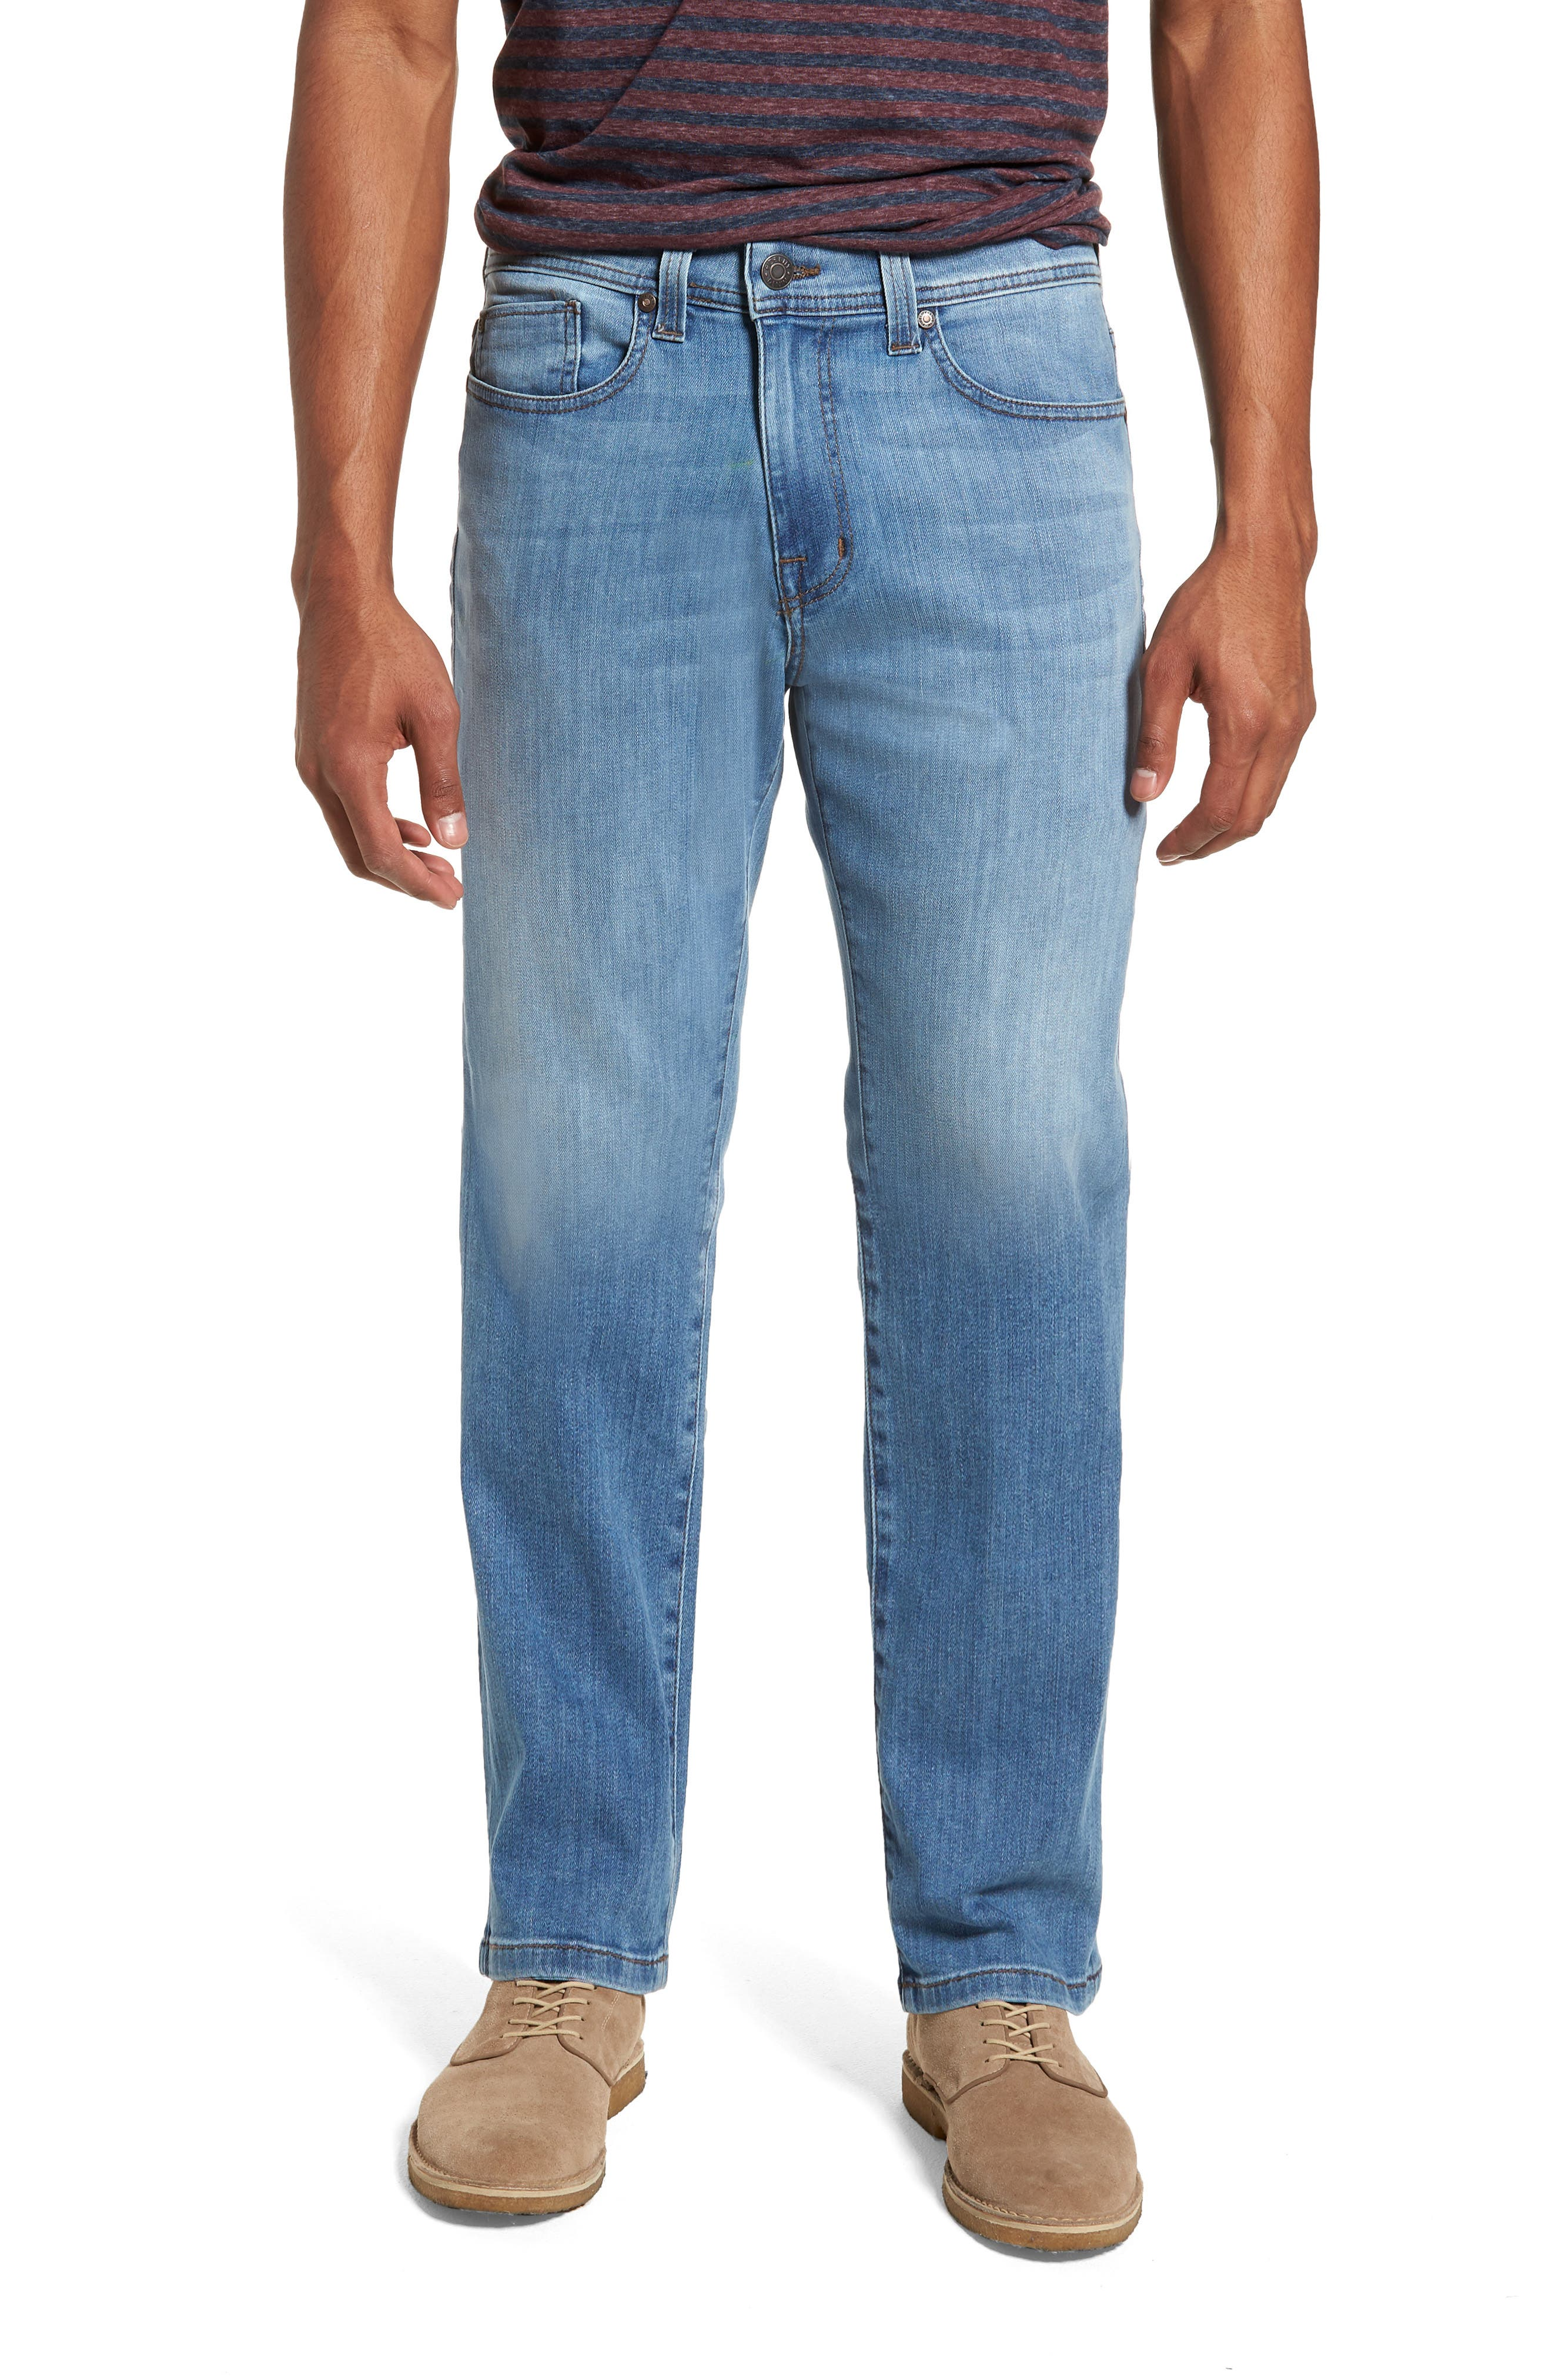 Jimmy Slim Straight Fit Jeans,                             Main thumbnail 1, color,                             400